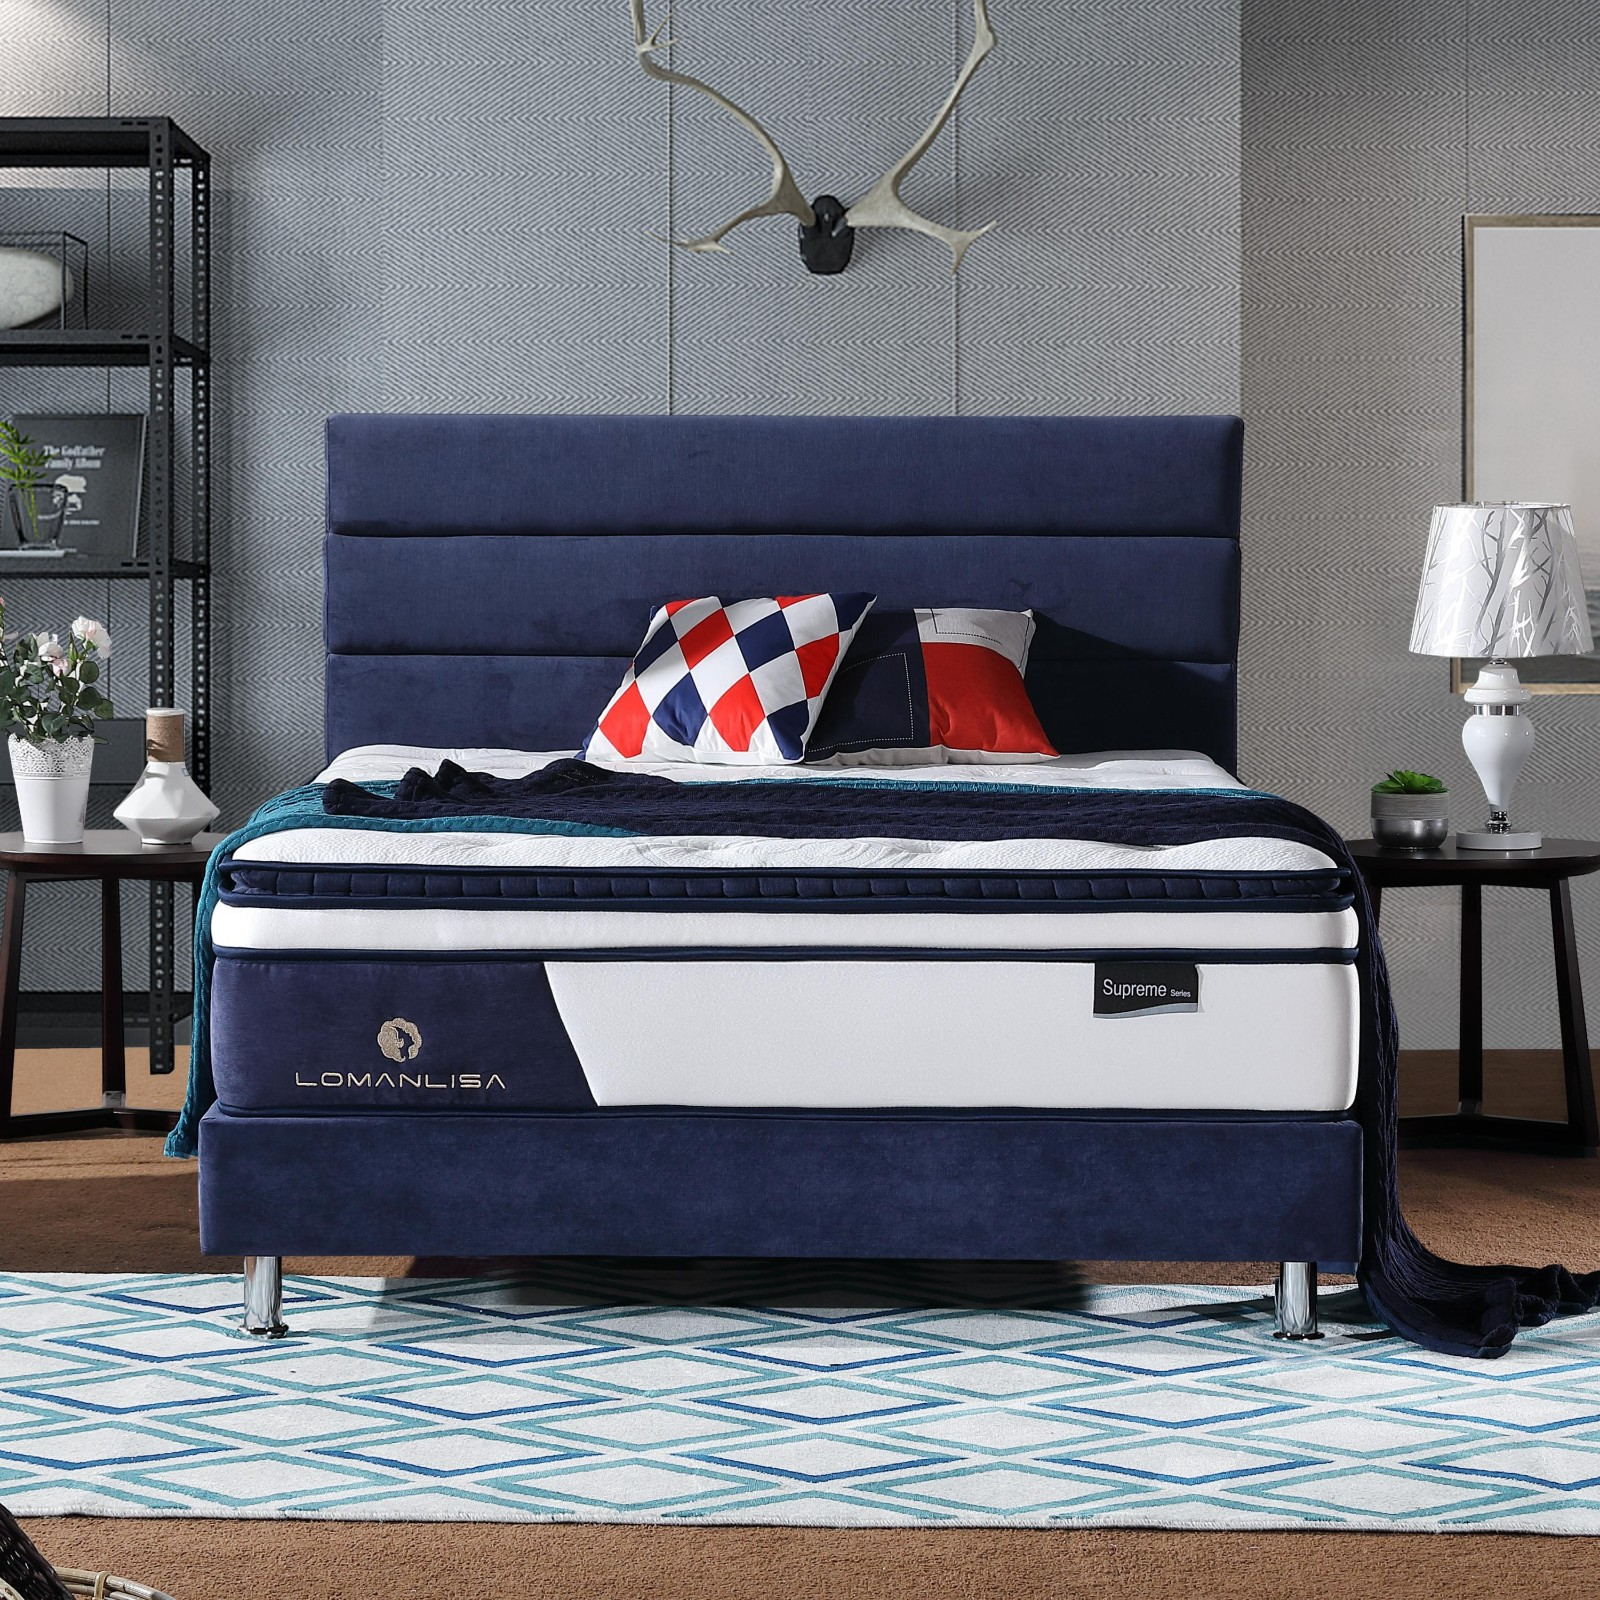 JLH comfortable cradle mattress-1